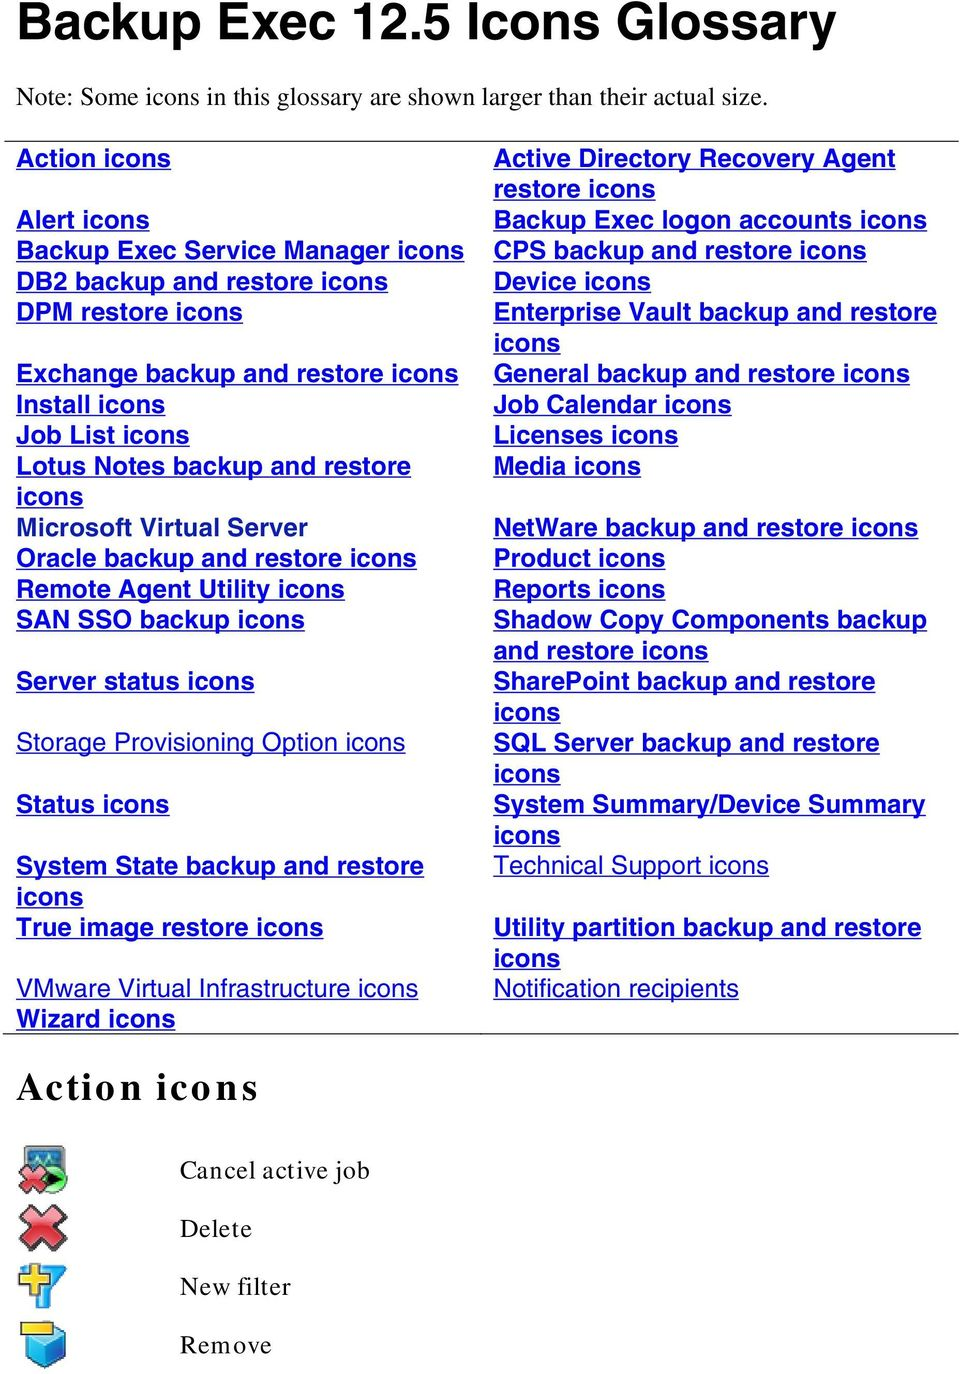 icons Microsoft Virtual Server Oracle backup and restore icons Remote Agent Utility icons SAN SSO backup icons Server status icons Storage Provisioning Option icons Status icons System State backup